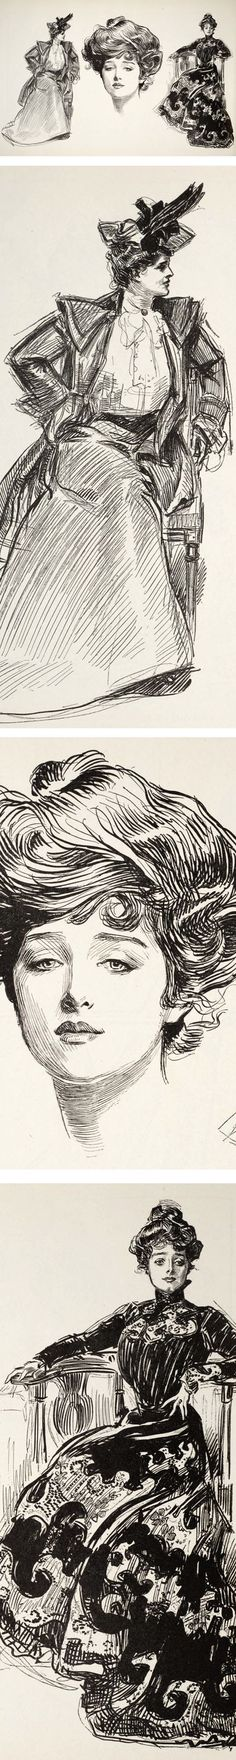 """Charles Dana Gibson was one of the great masters of pen and ink and a major early figure in """"Golden Age"""" illustration.  Look at the head of the """"Gibson Girl"""" the center, and the variety of lines, from the short, fine pen strokes around the eyes and nose, to the fluid, calligraphic curves at the top of the hair (which I assume are done with a brush). Wonderful."""